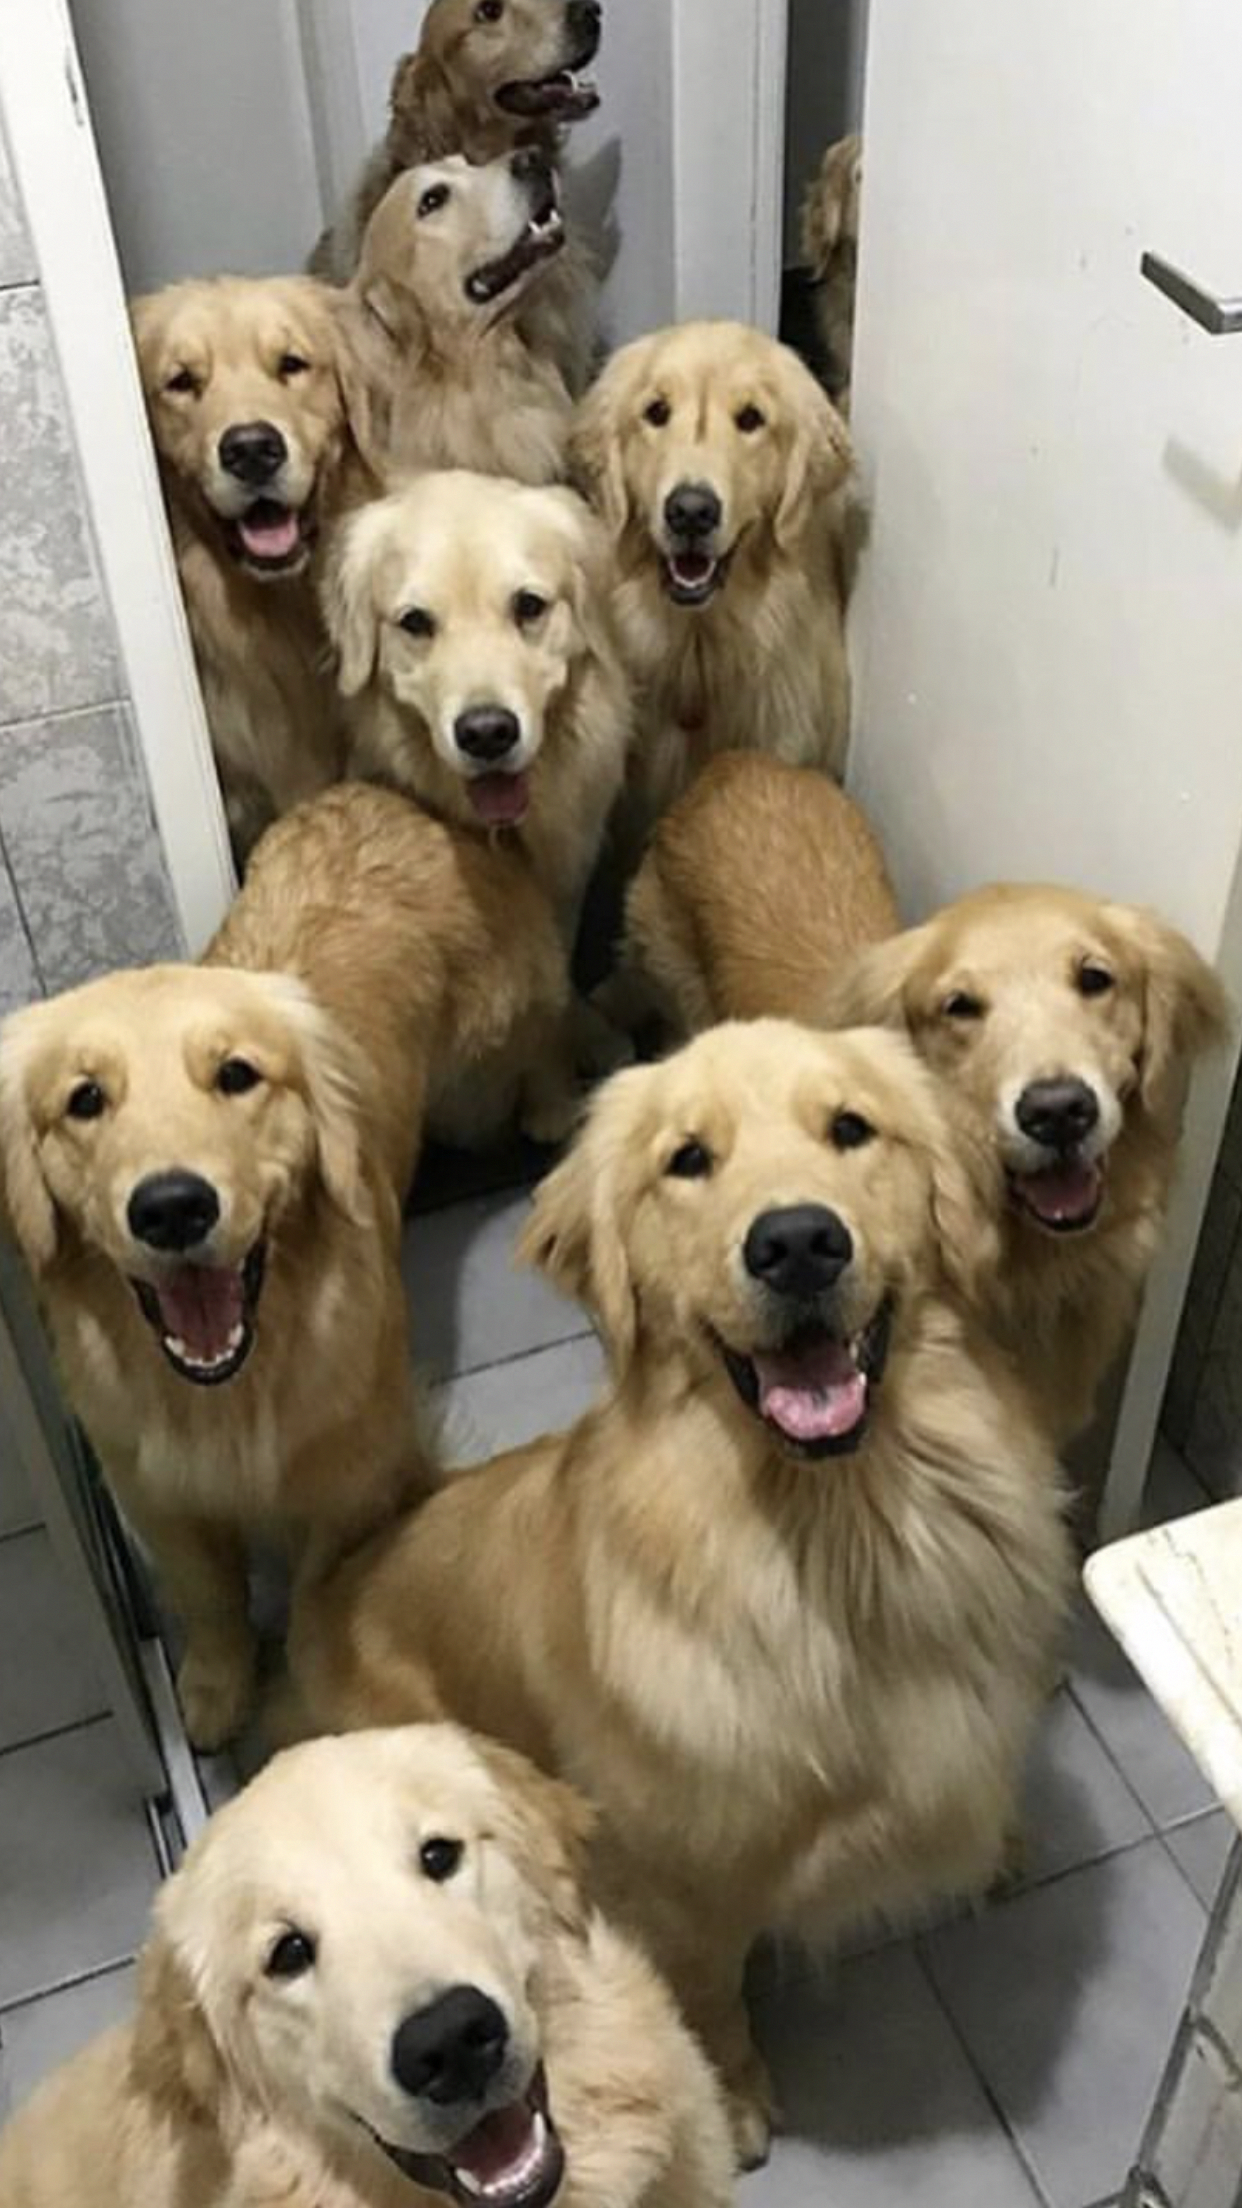 This Is What Happens When You Fall In Love With Your Dogs Entire Litter Of Puppies Goldenretrievers Dogs Golden Retriever Dog Love